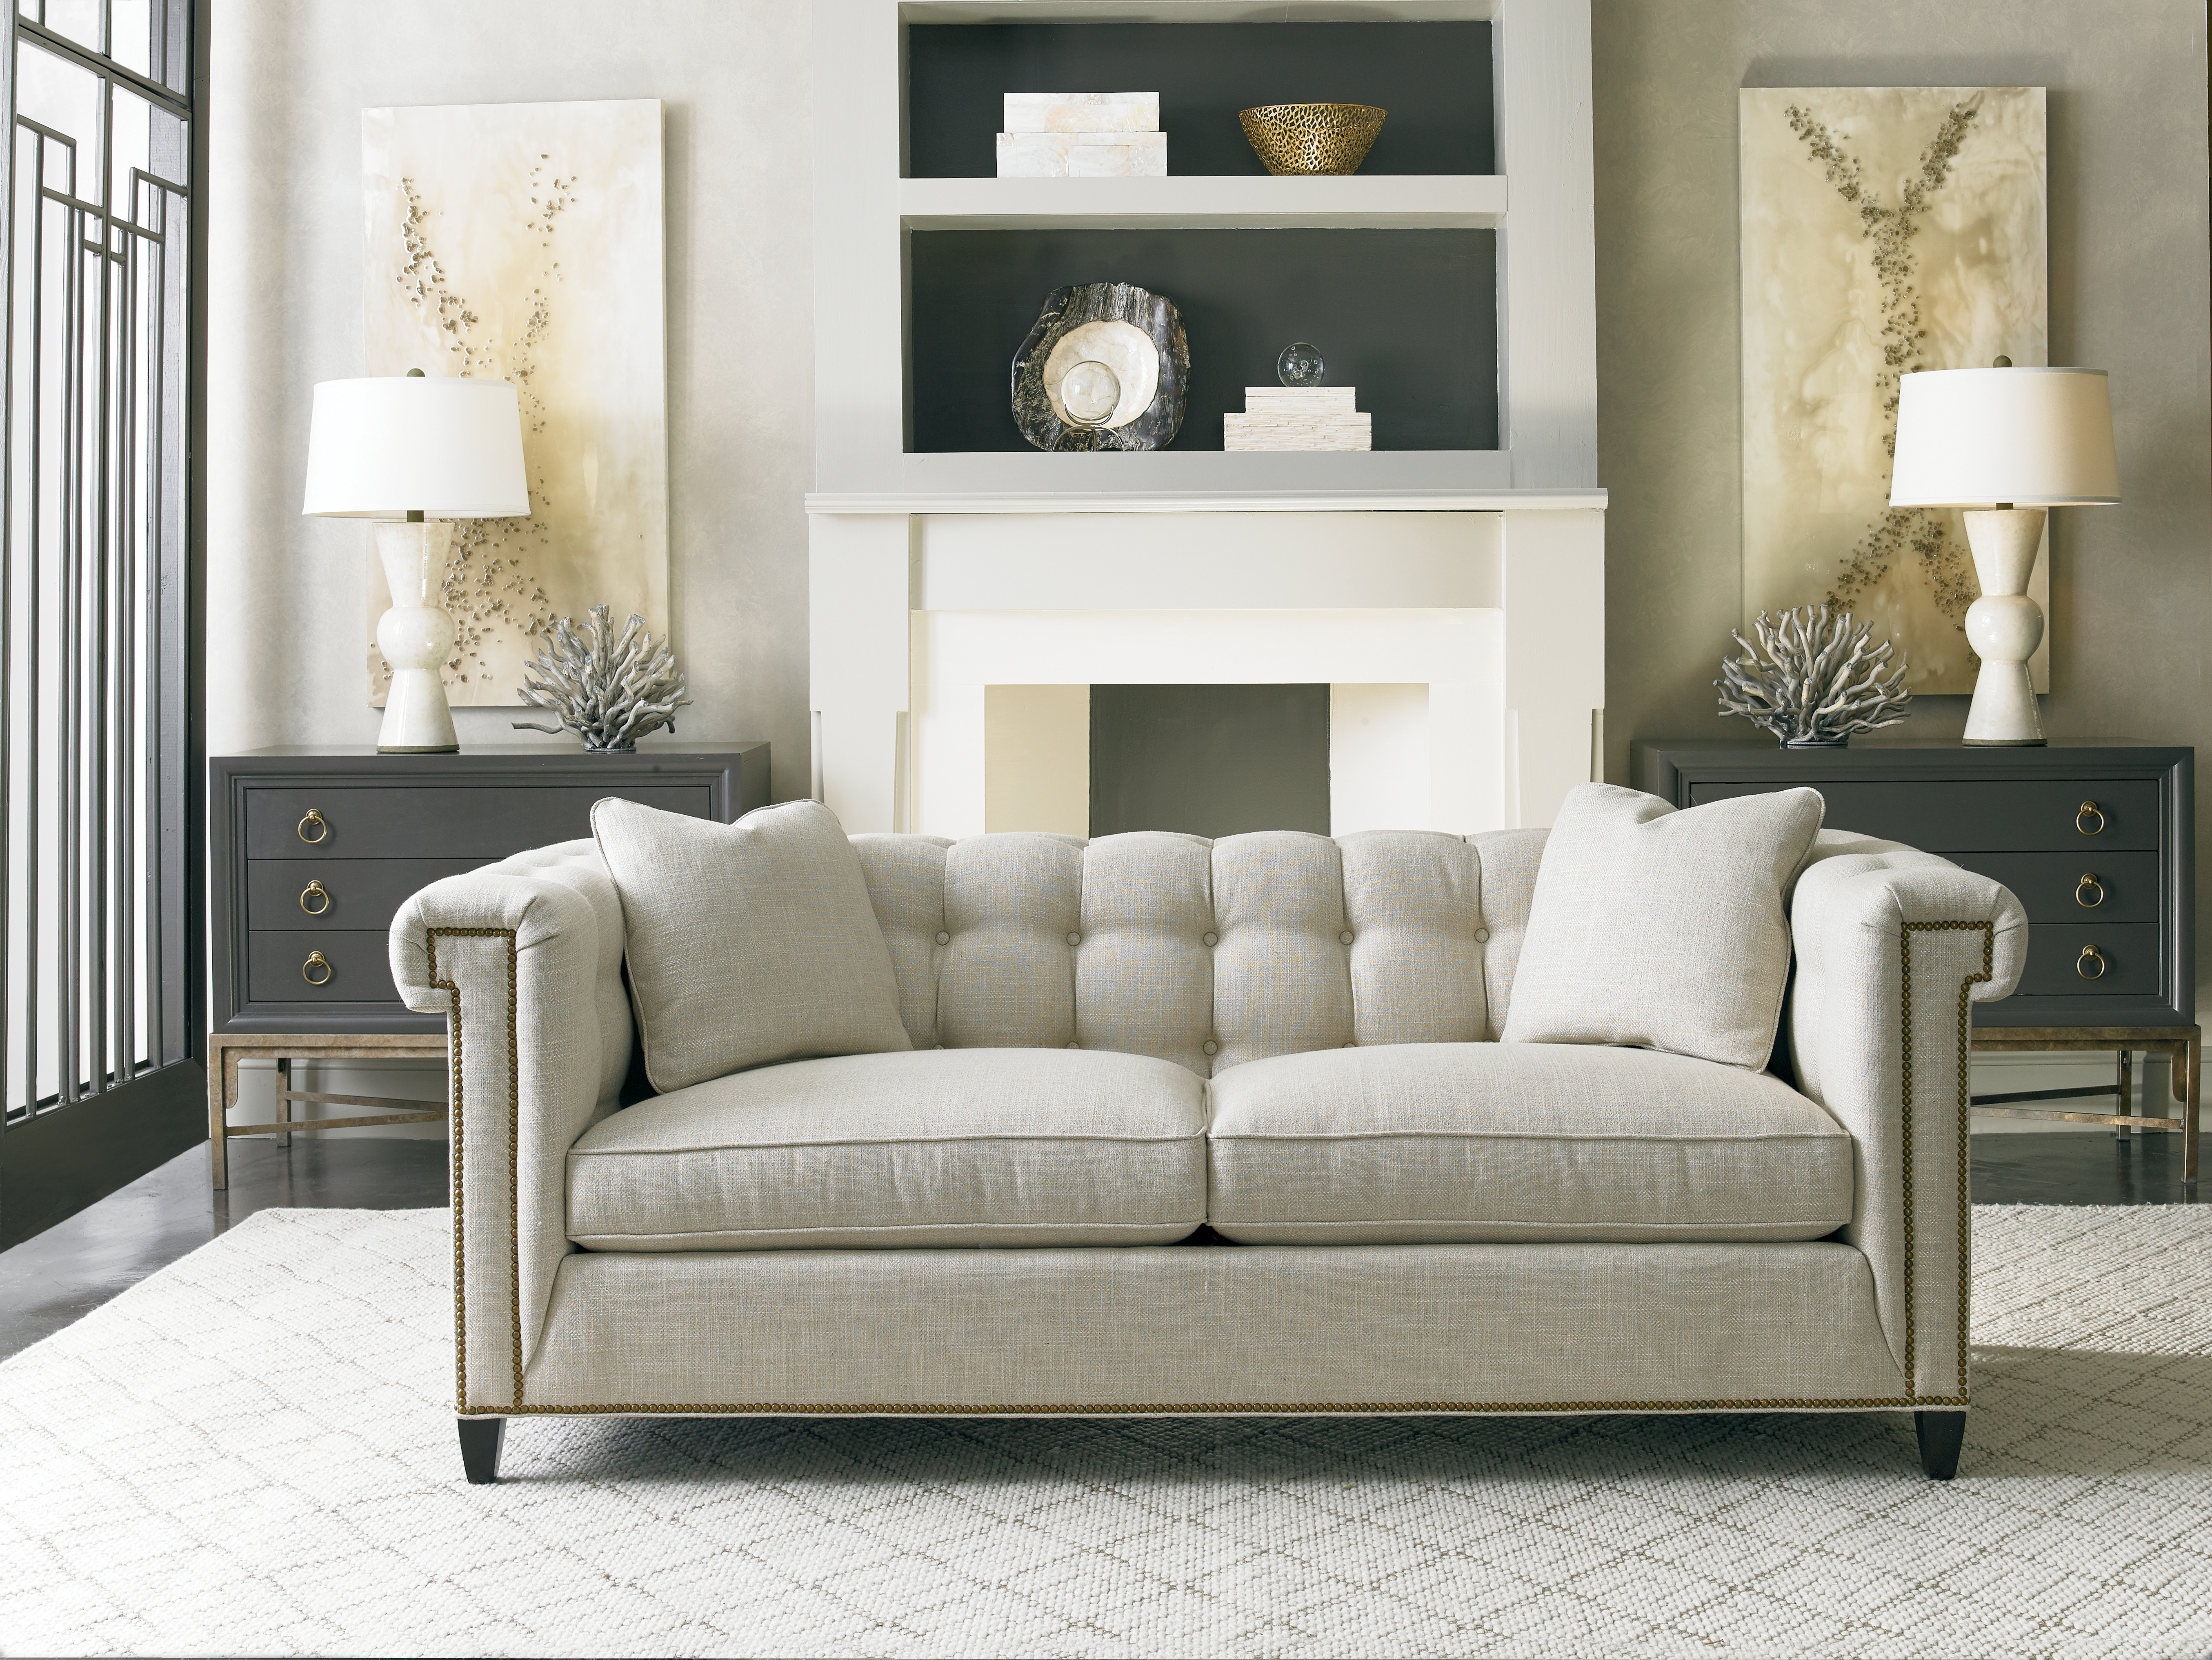 Exceptionnel Sherrill Furniture Special Order Event